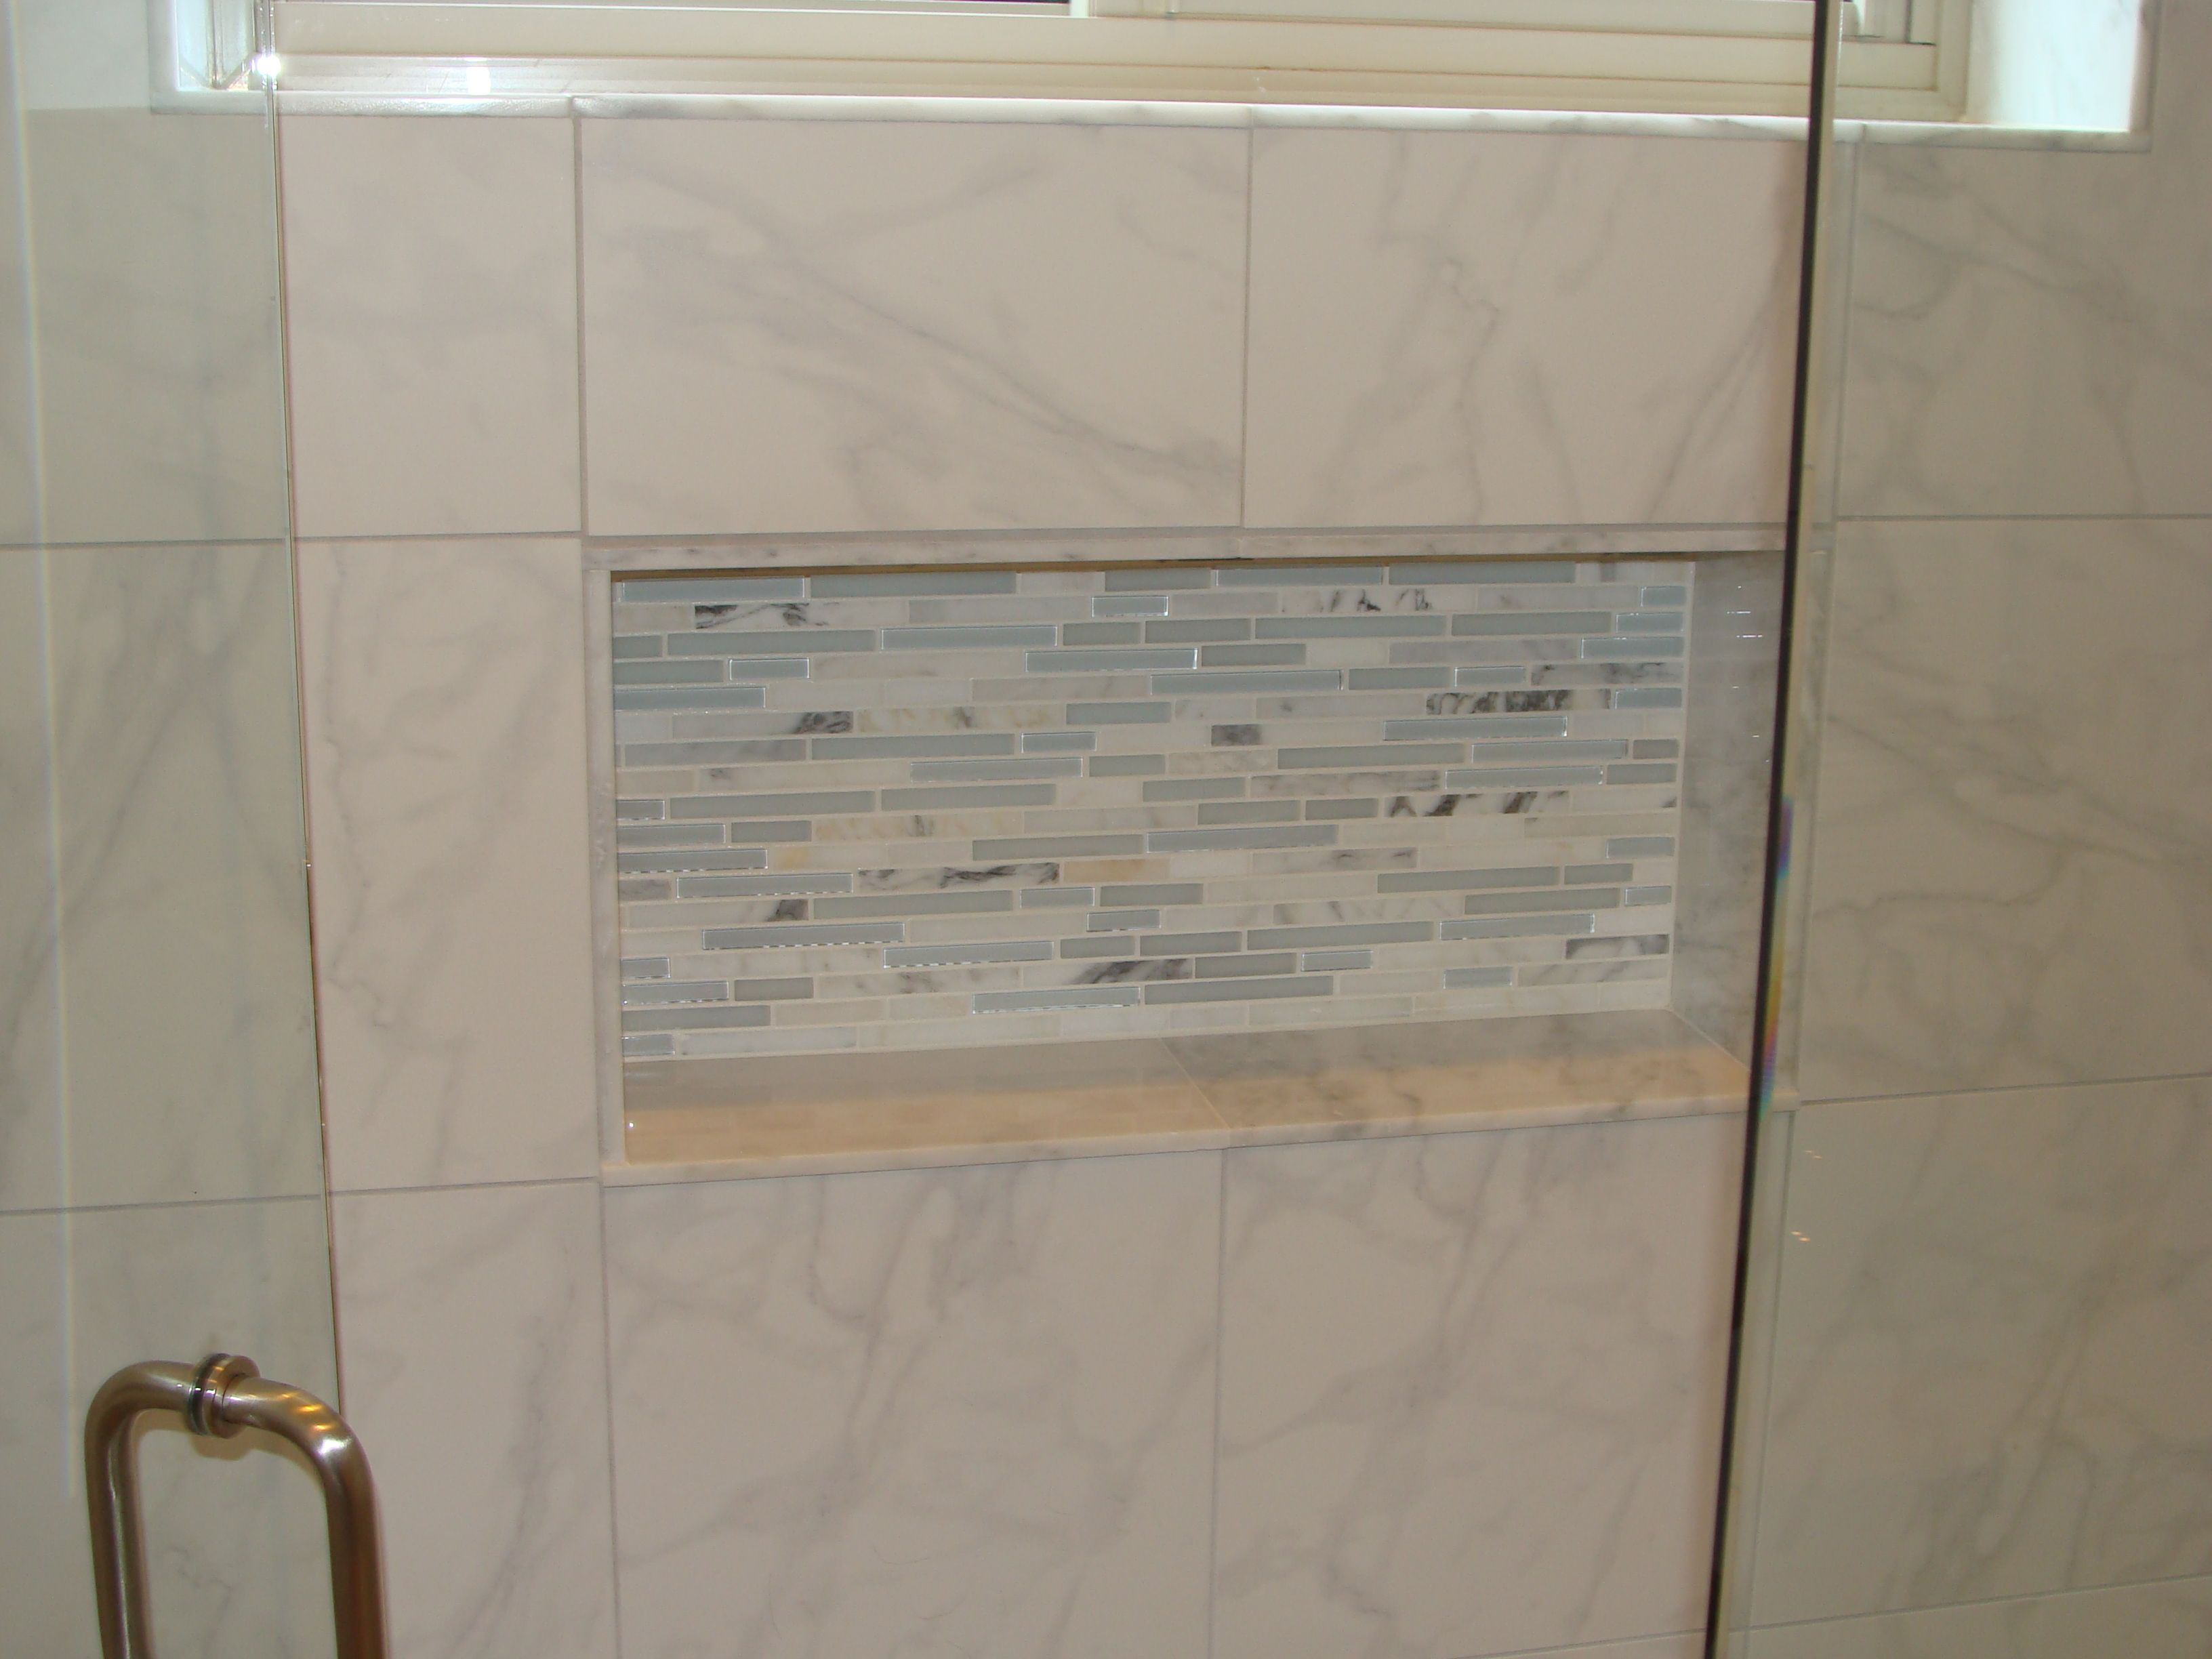 Recessed shower niche 2 bathrooms and kitchens pinterest recessed shower niche 2 dailygadgetfo Choice Image